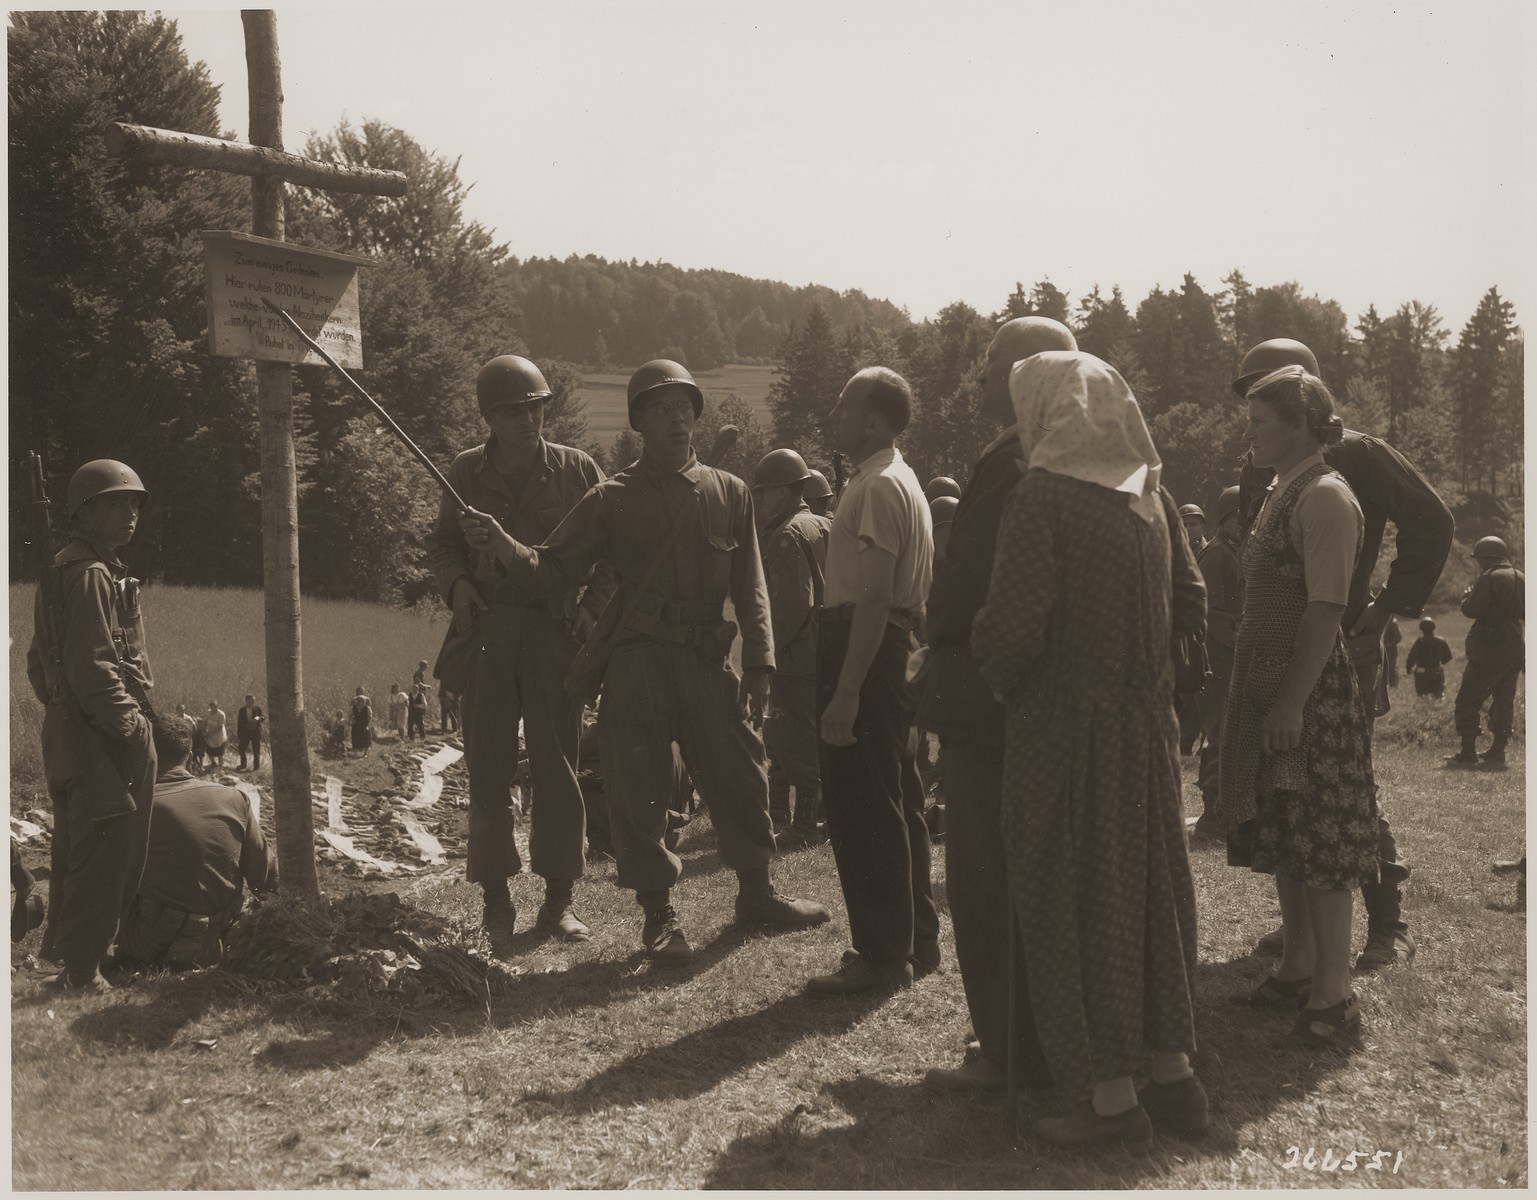 An American soldier points out a sign to German civilians that memorializes the 800 prisoners shot by the SS near the town of Nammering.  In the background, other German civilians walk among corpses exhumed from the mass grave.